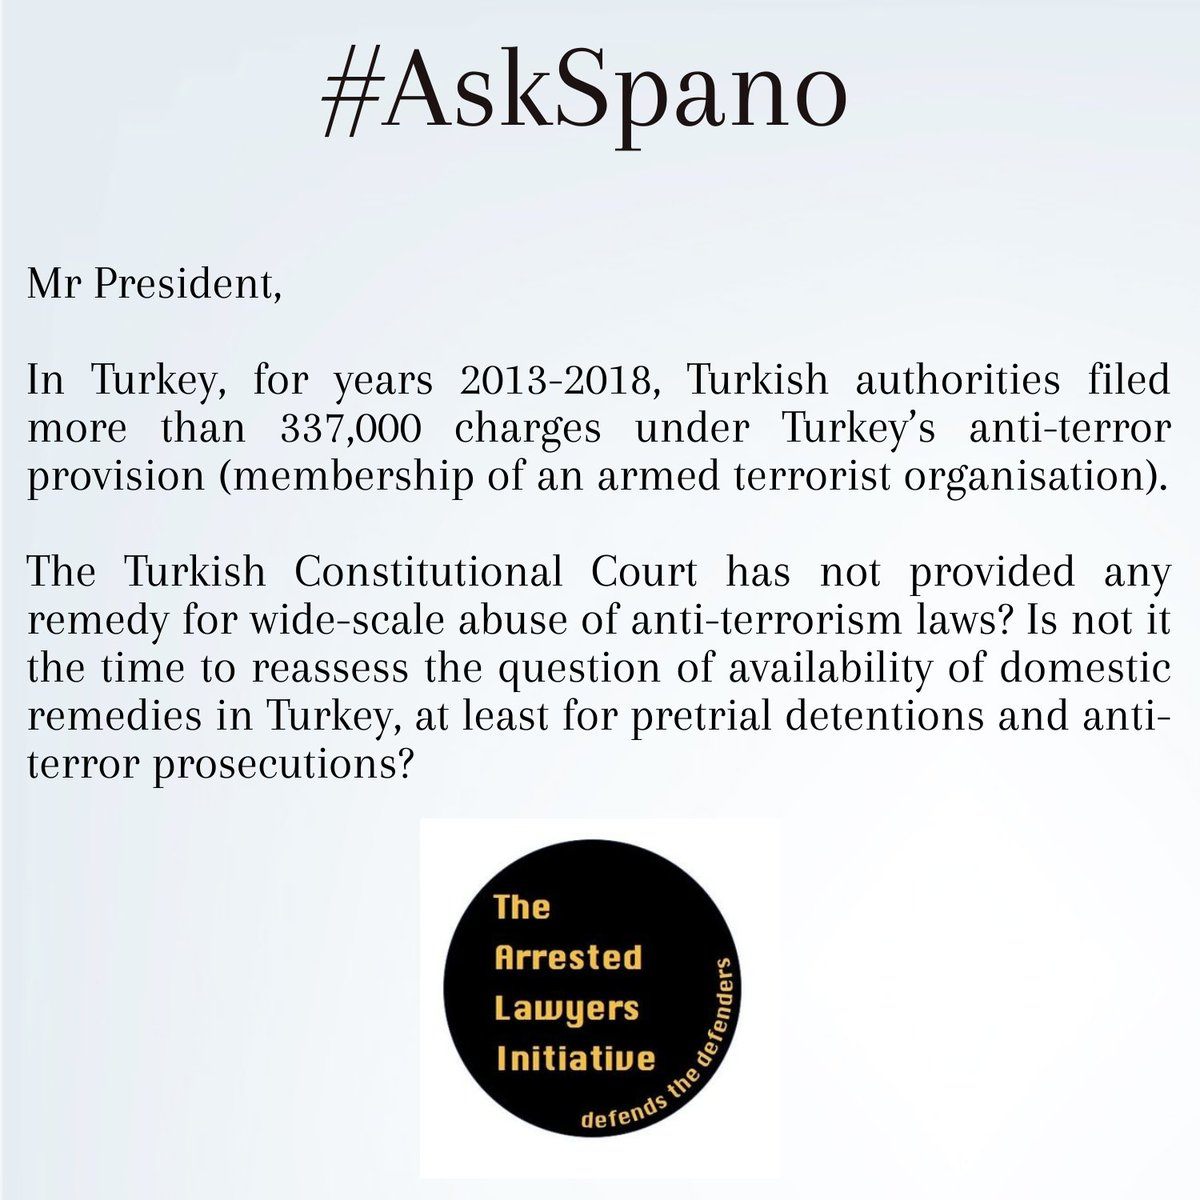 #AskSpano @Verfassungsblog @iCourts_jur Constitutional Court hasnt provided any remedy for wide-scale abuse of anti-terrorism laws? Is not it time to reassess the Q of availability of domestic remedies in #Turkey, at least for pretrial detentions & anti-terror prosecutions?